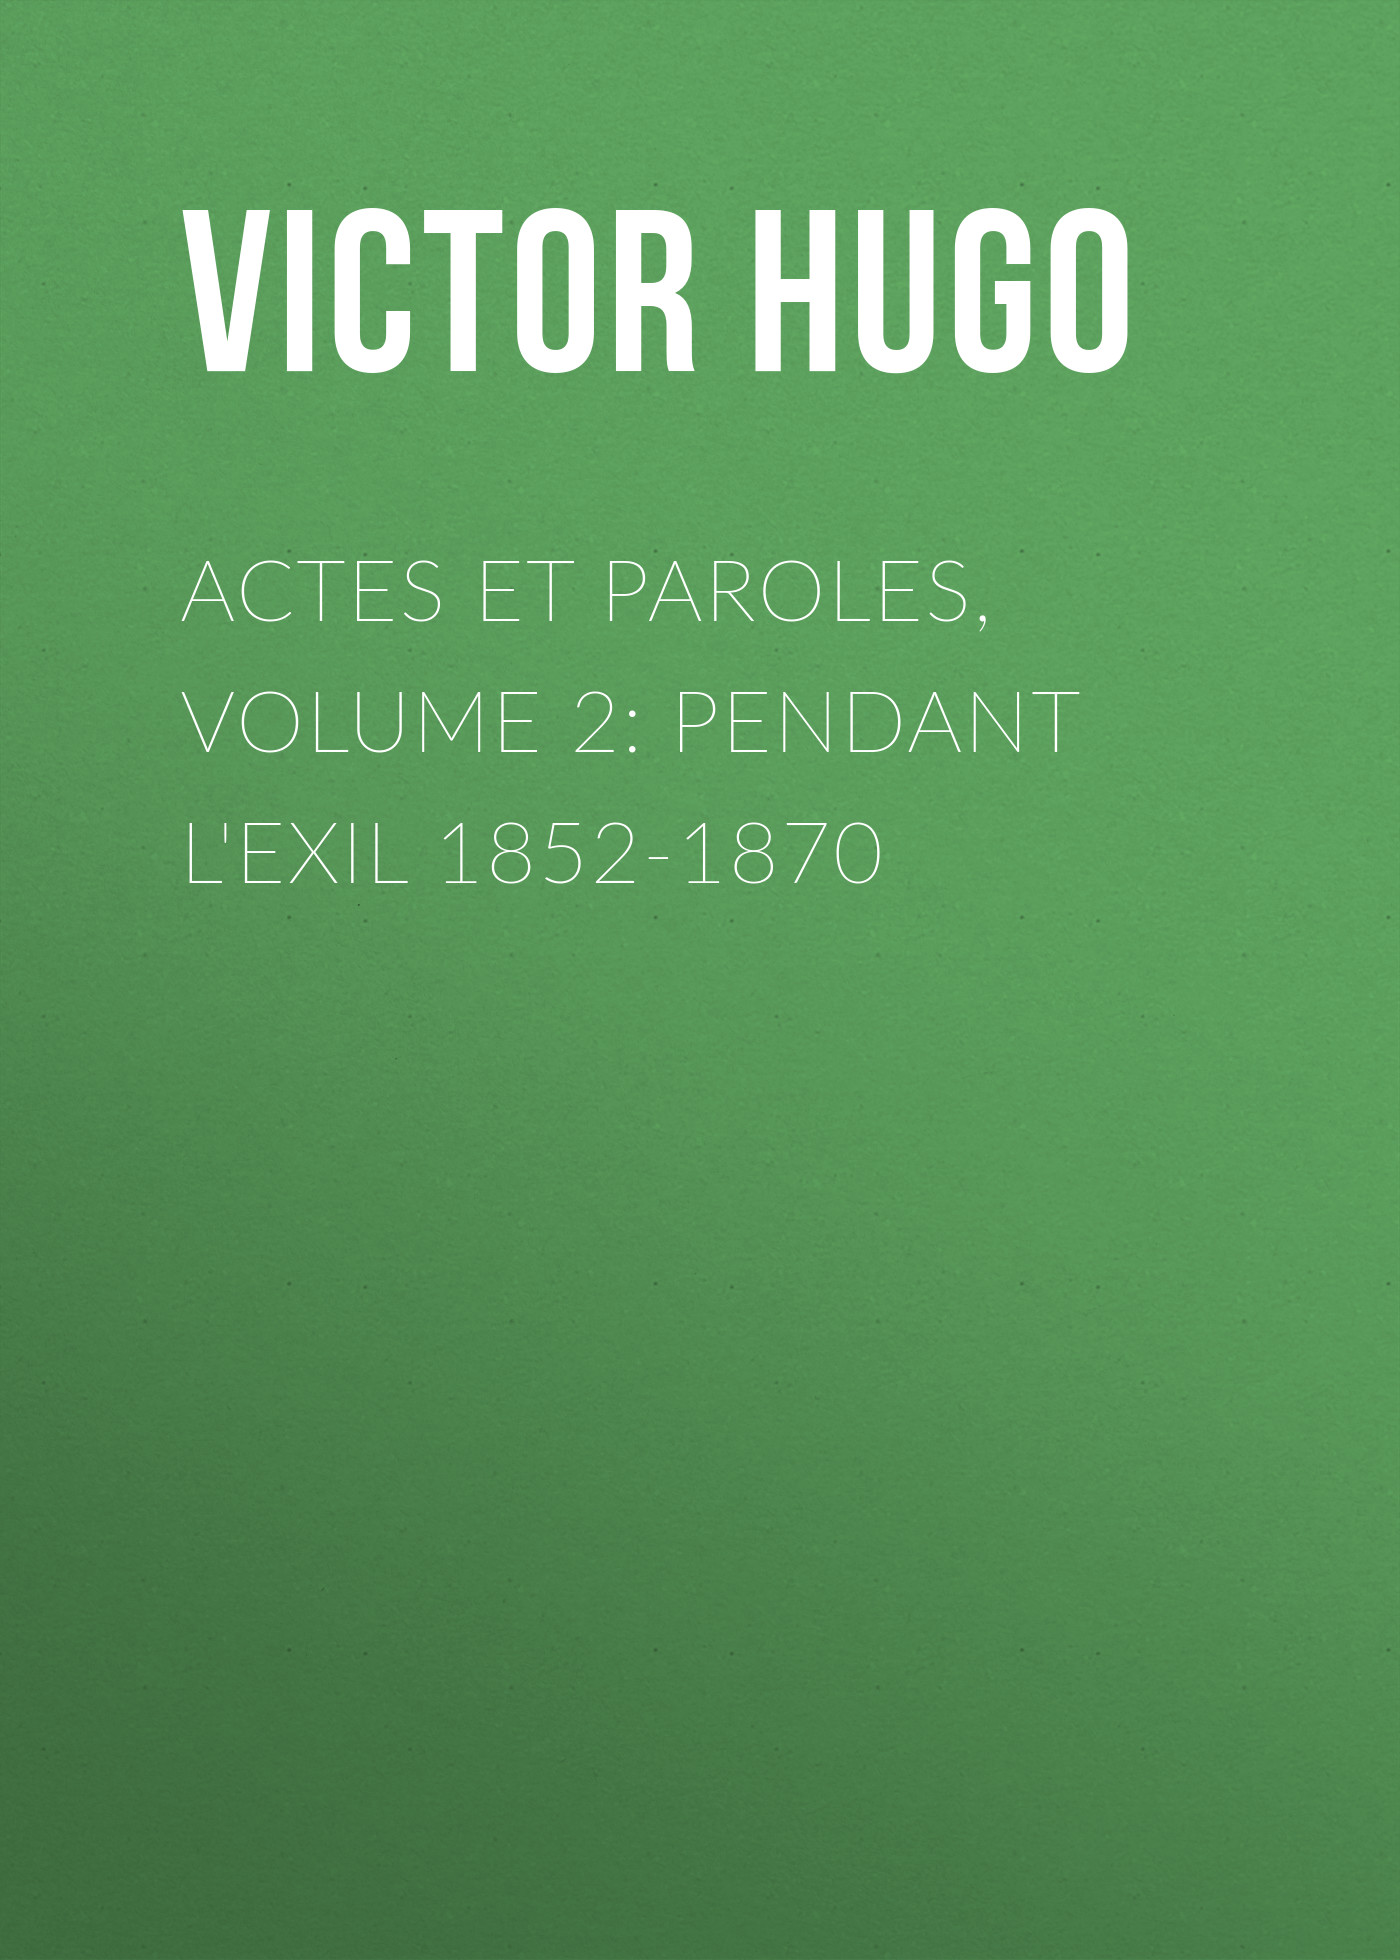 Виктор Мари Гюго Actes et Paroles, Volume 2: Pendant l'exil 1852-1870 paroles